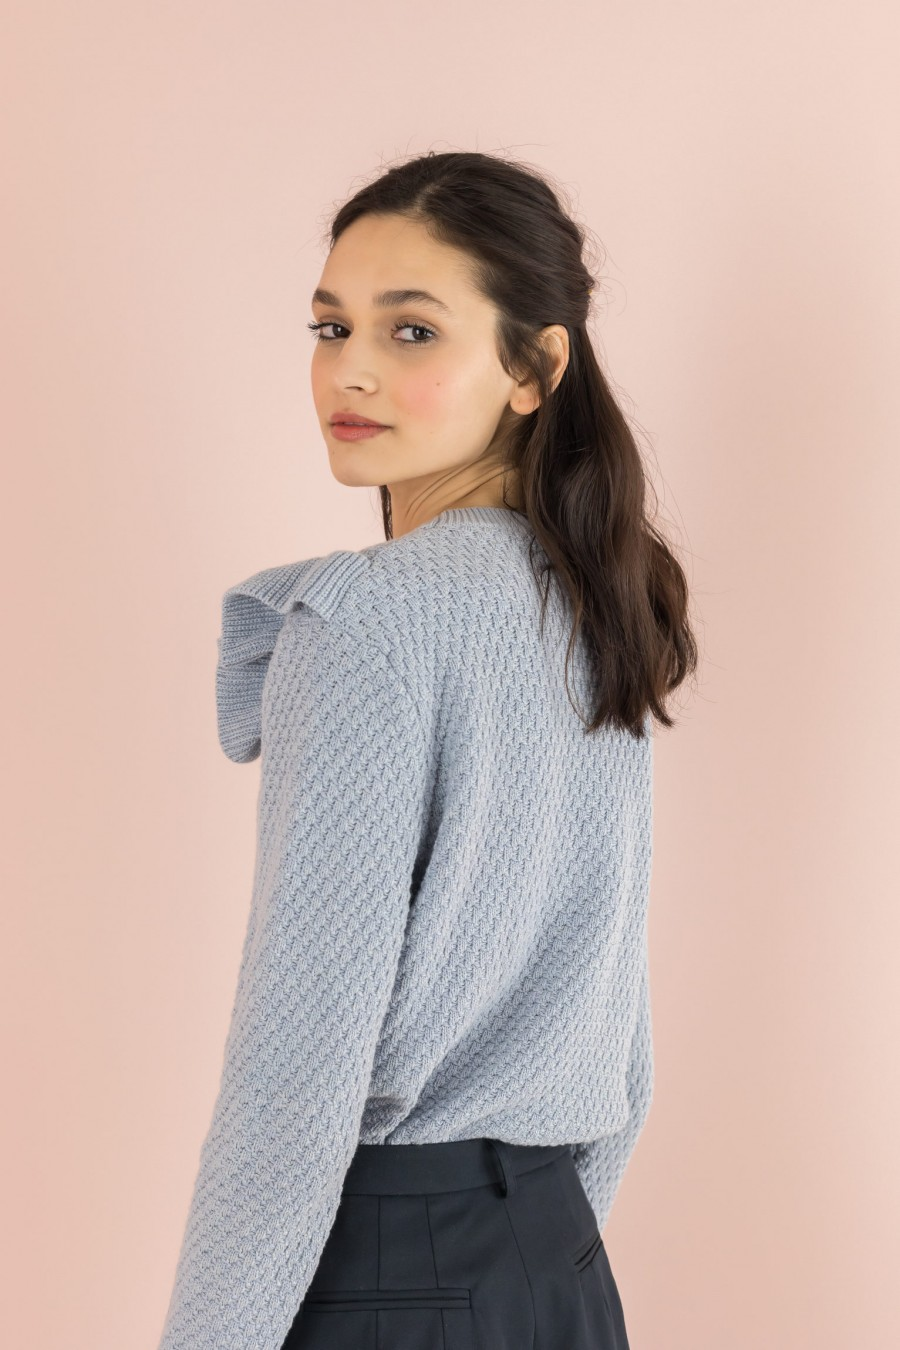 sky-colored sweater